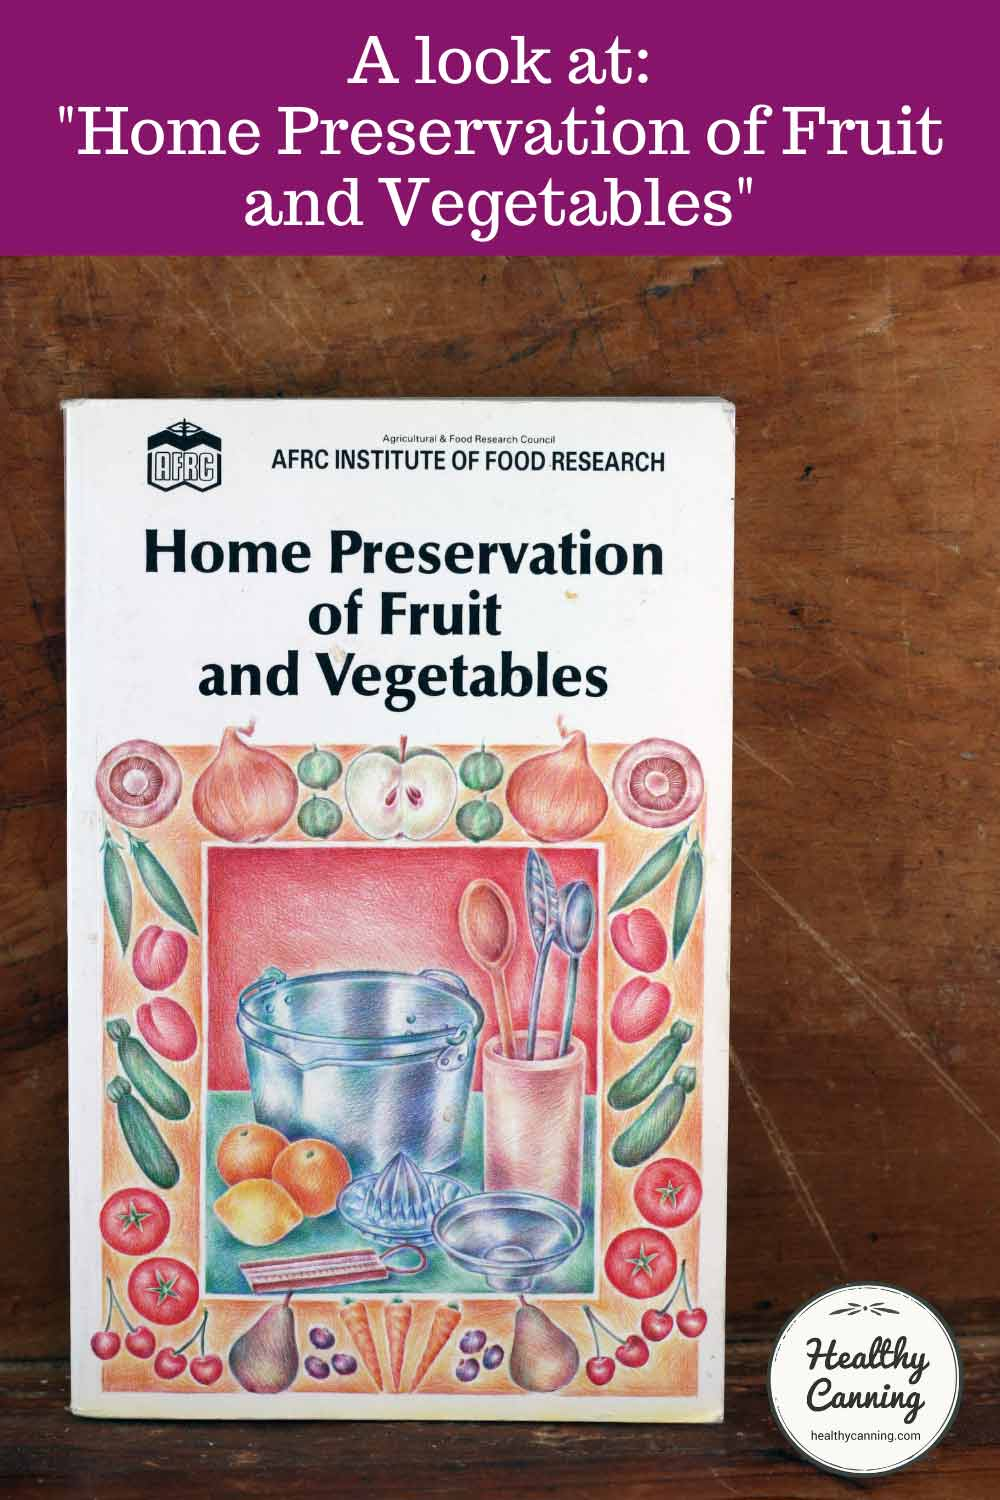 Home Preservation of fruit and Vegetables, 1989 edition